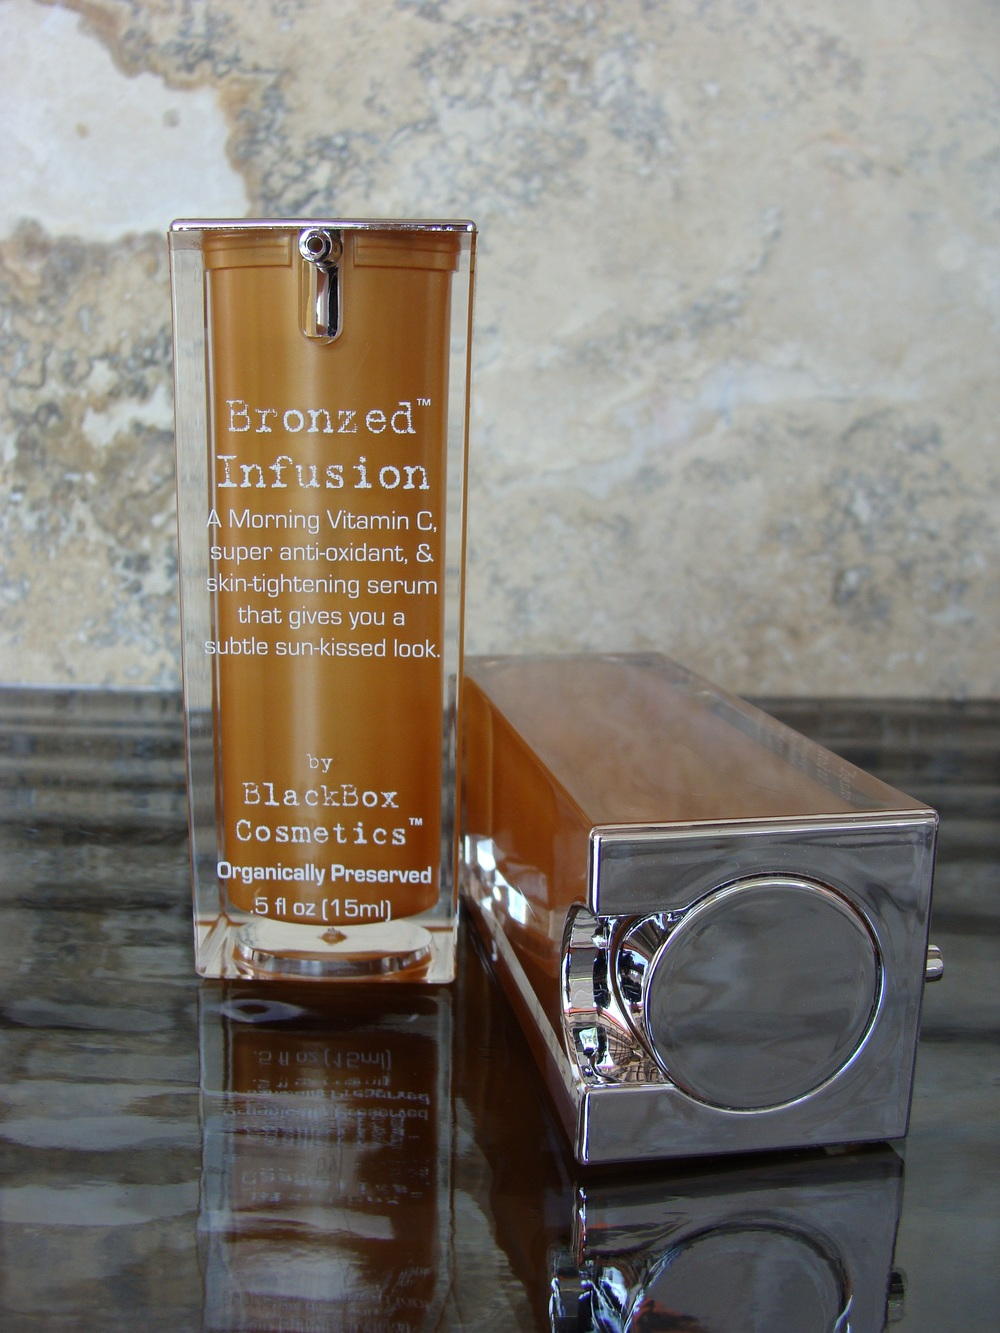 BlackBox Cosmetics Bronzed Infusion